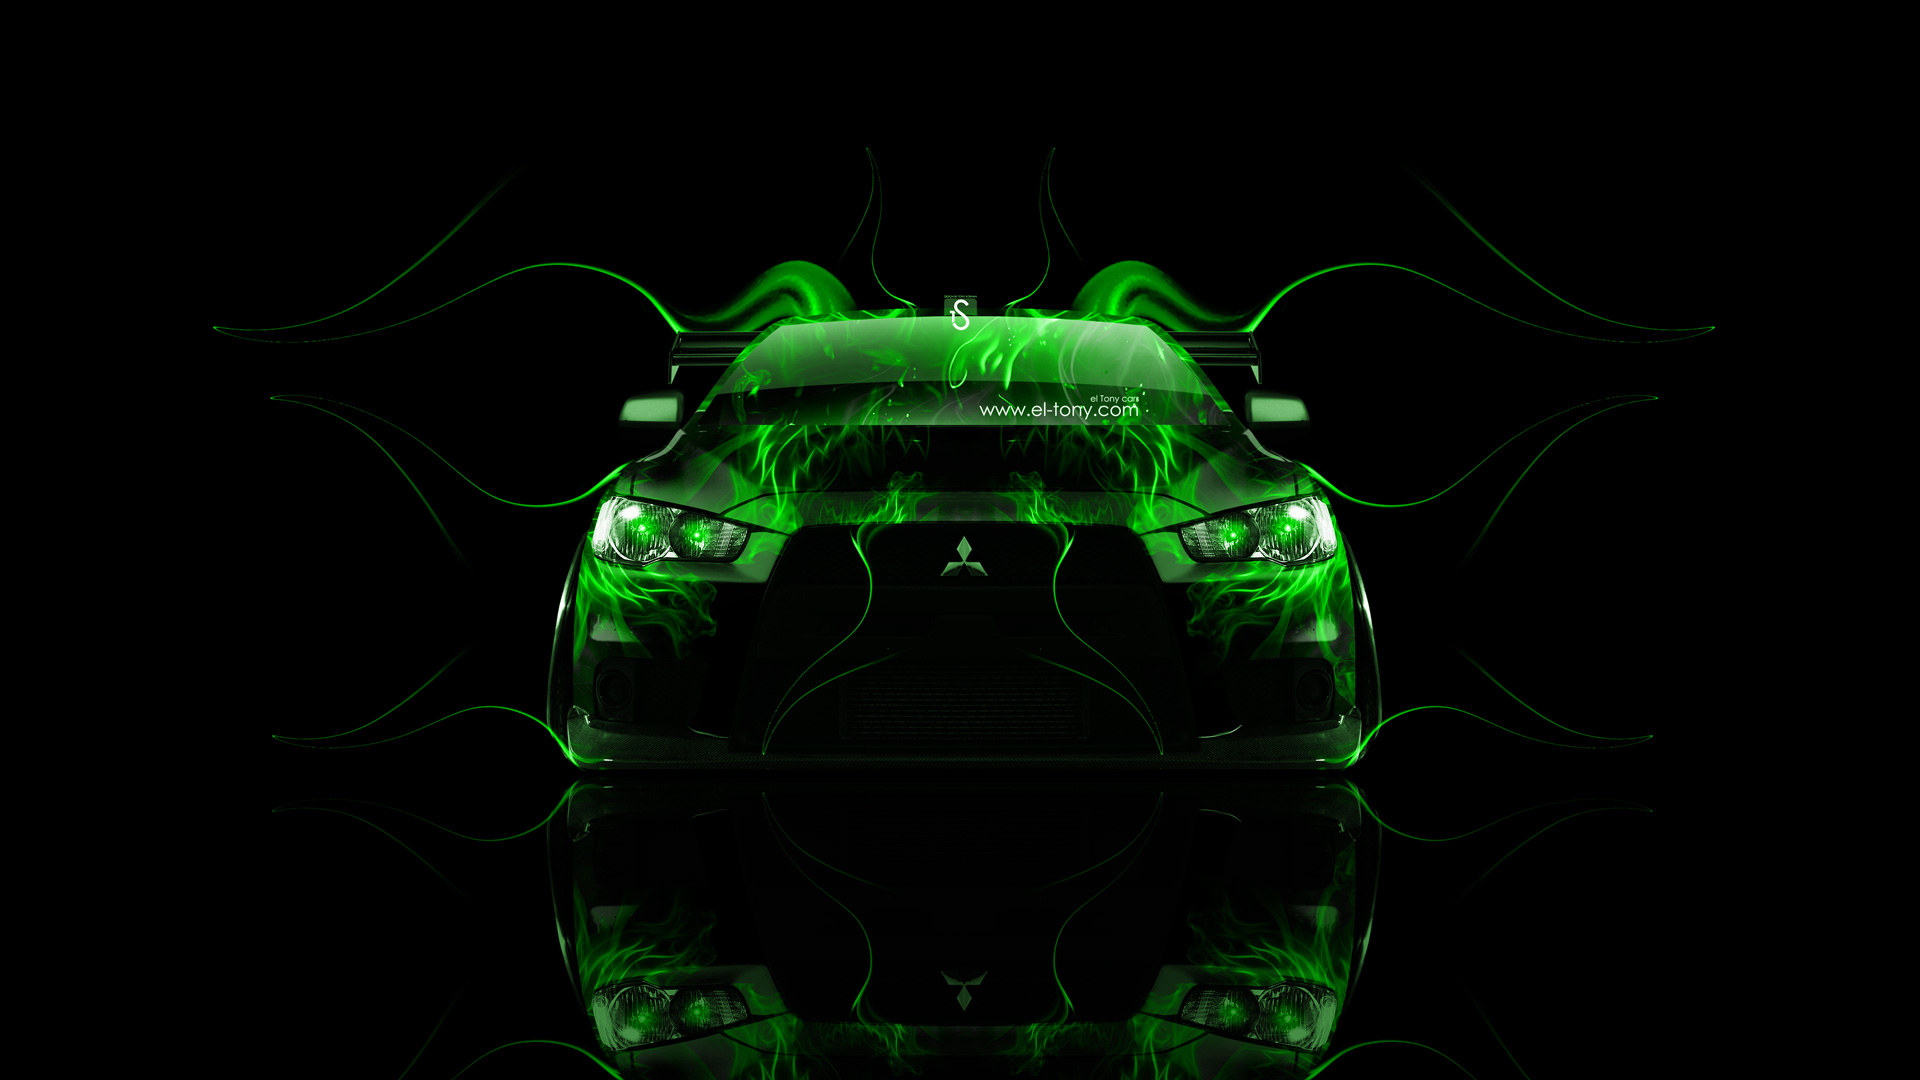 ... Mitsubishi Lancer Evolution X Tuning Front Green Fire  ... Gallery